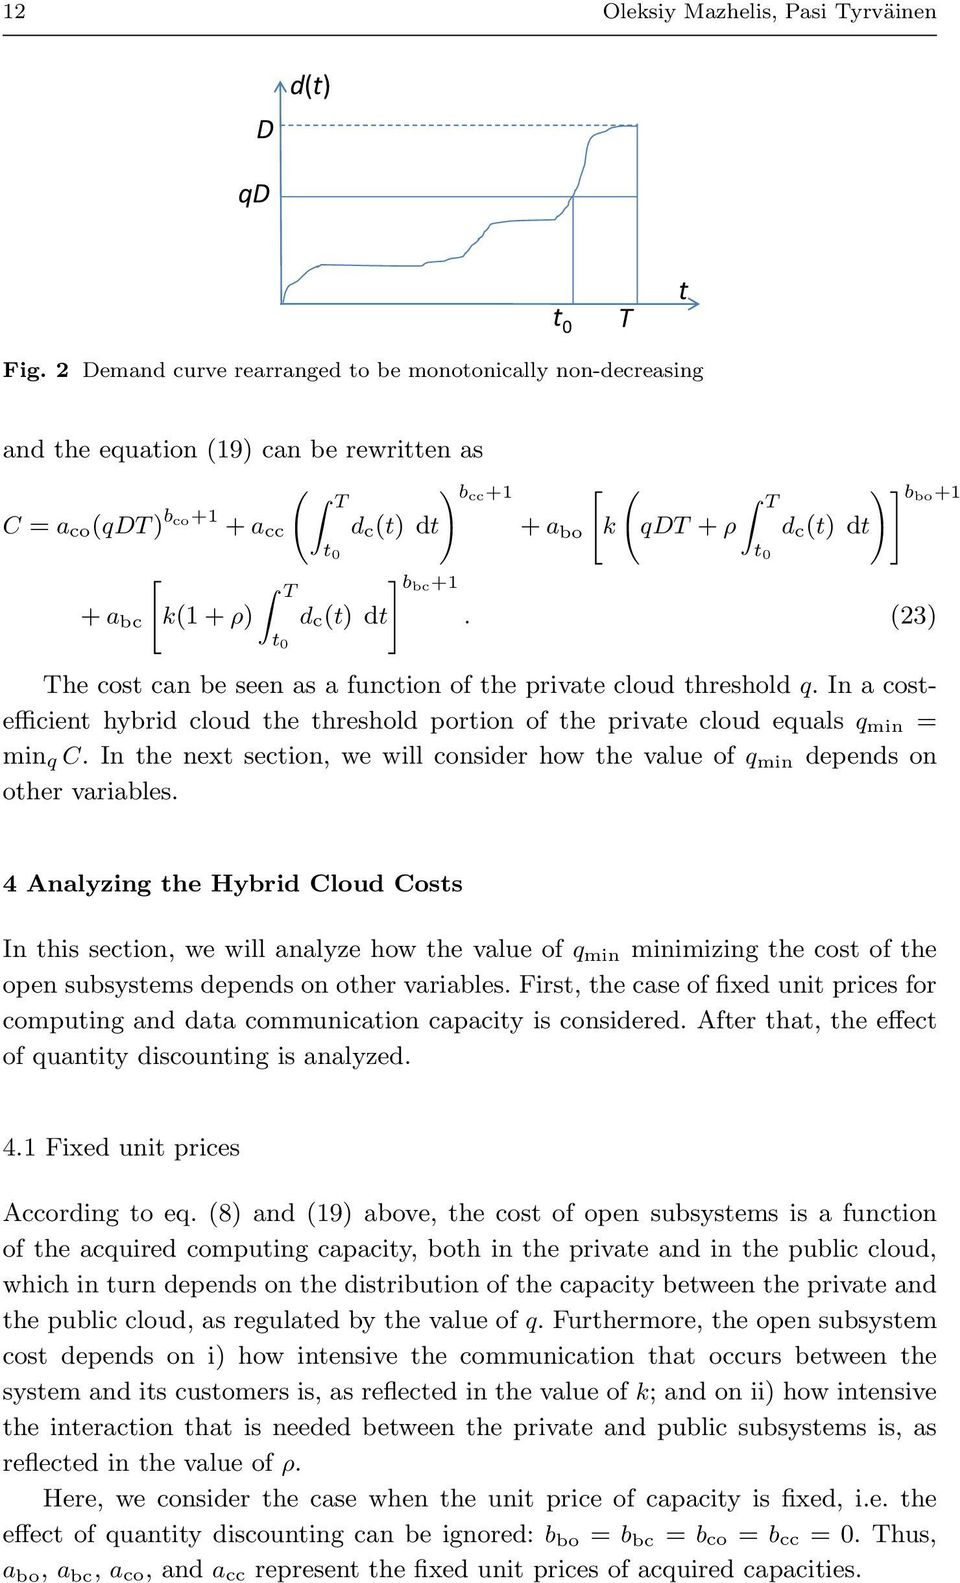 d c(t) dt ] bbc+1 T t 0 d c(t) dt )] bbo+1. (3) The cost can be seen as a function of the private cloud threshold q.